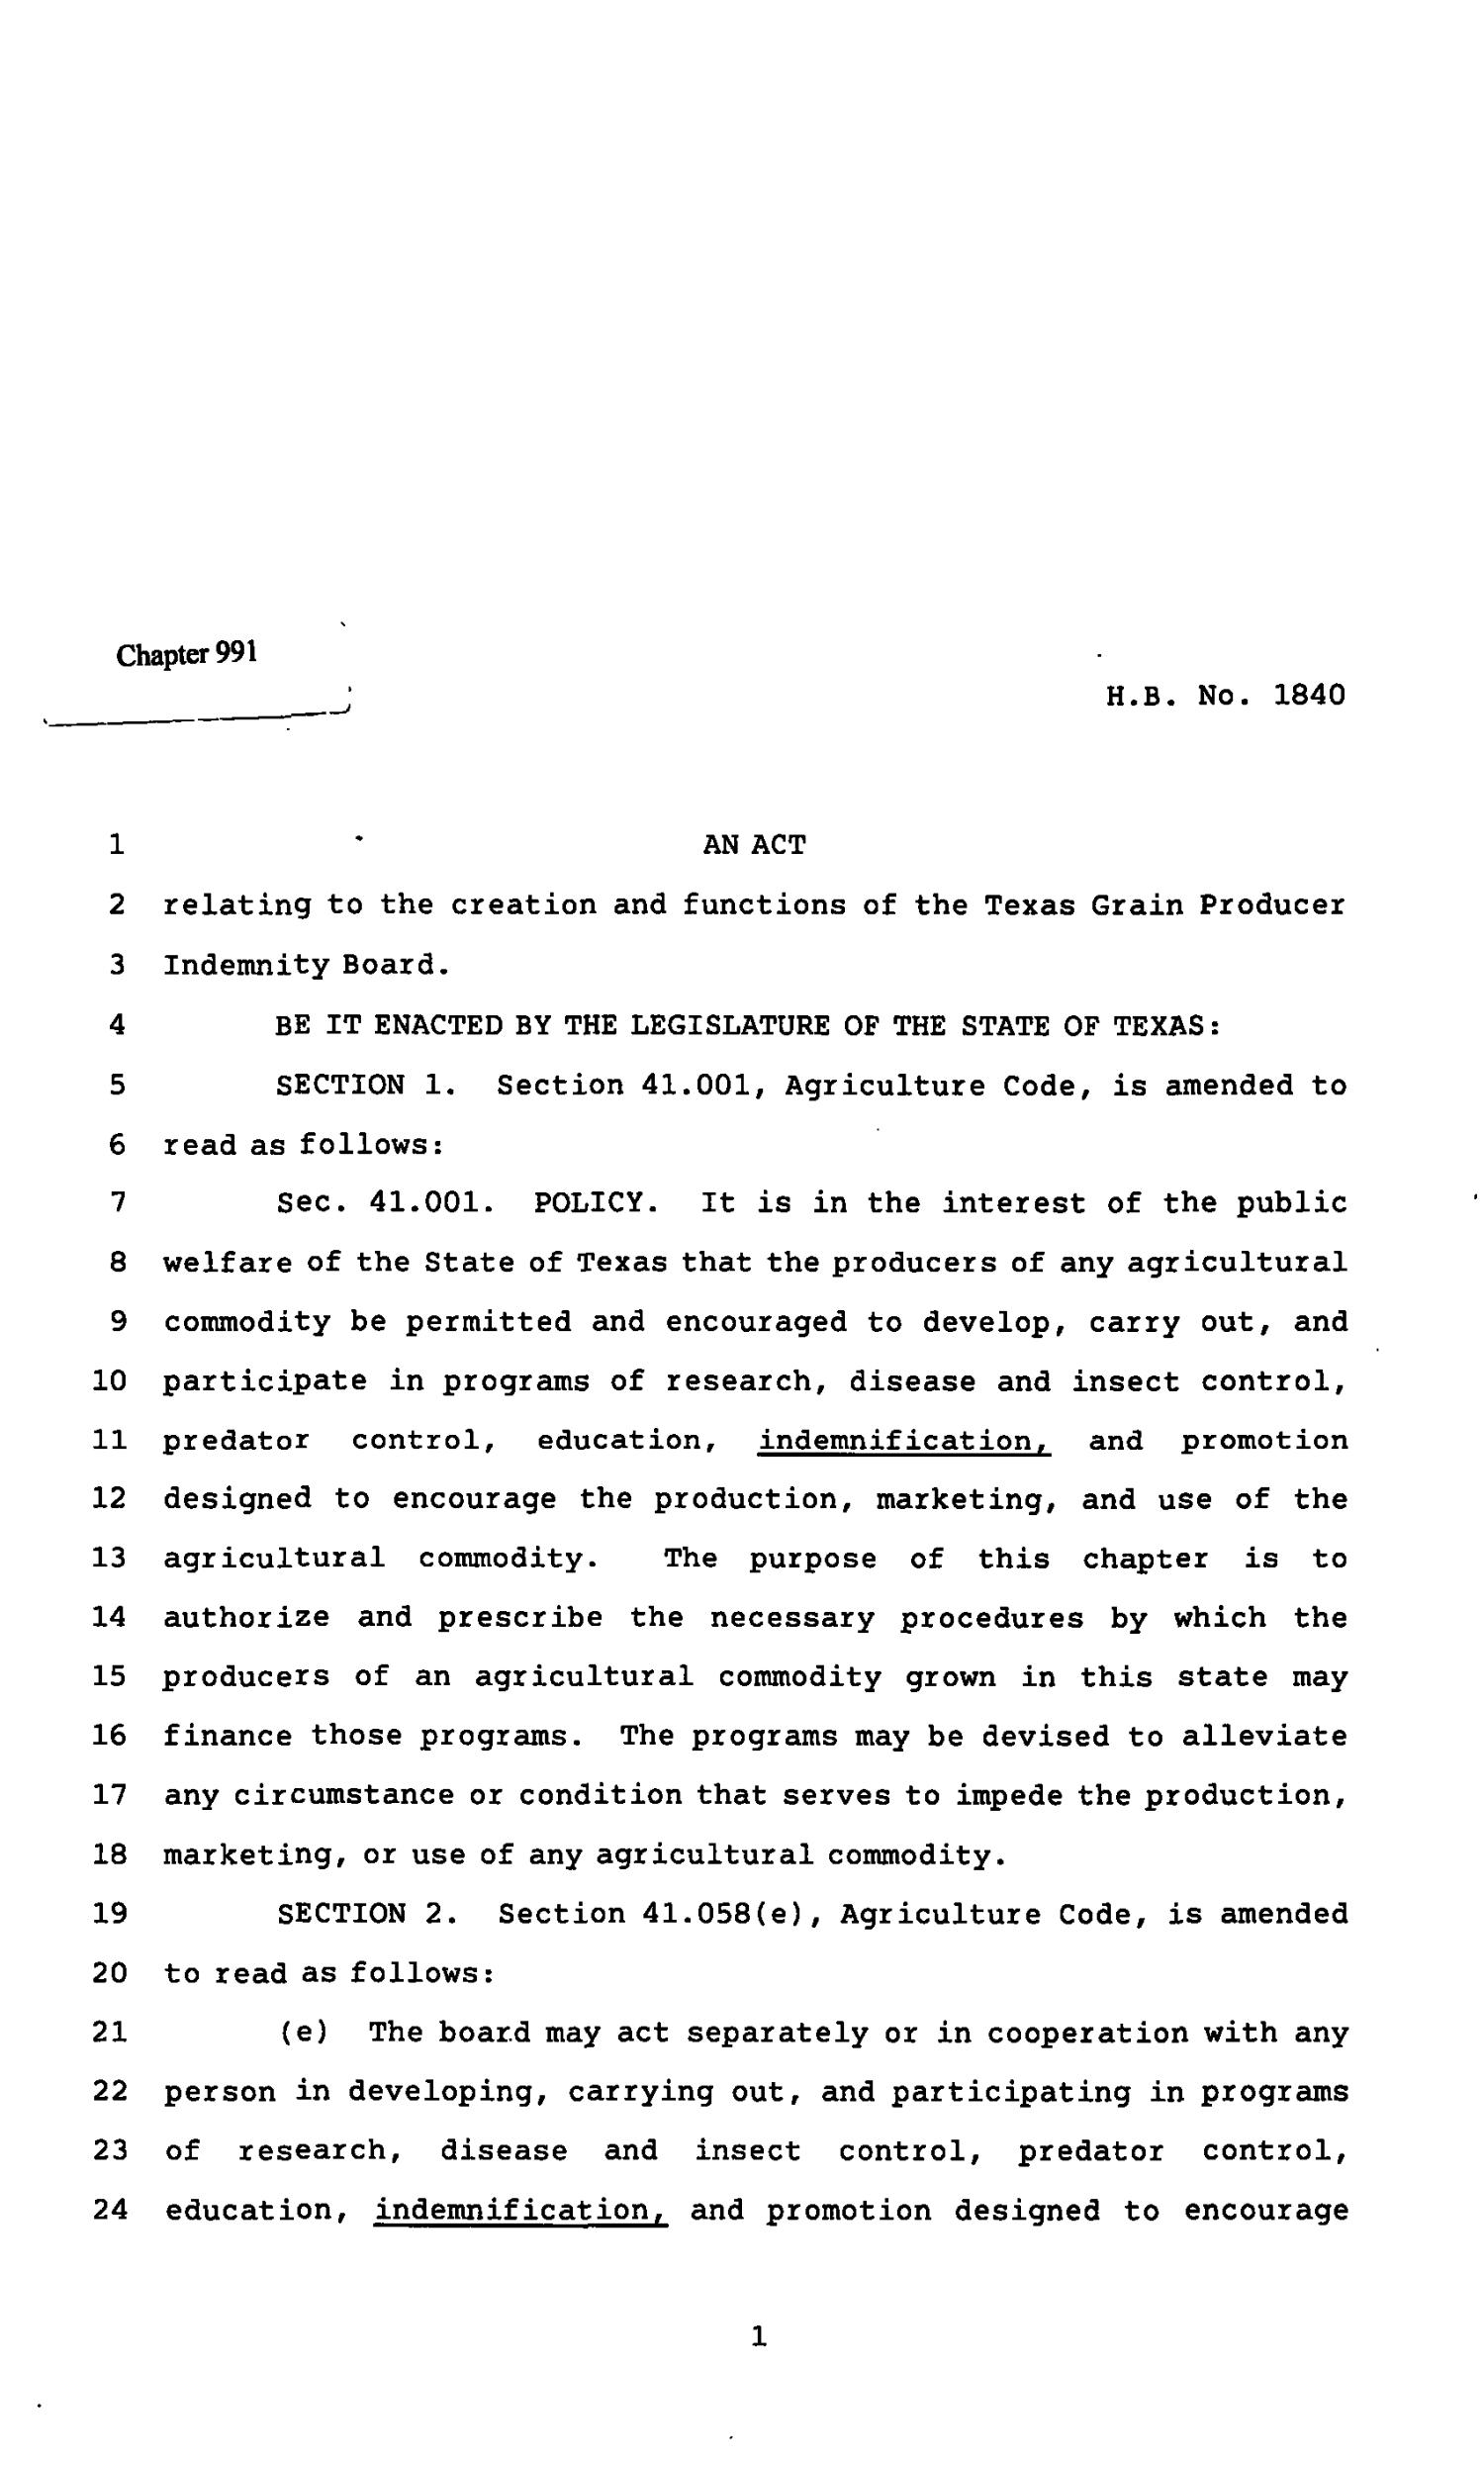 82nd Texas Legislature, Regular Session, House Bill 1840, Chapter 991                                                                                                      [Sequence #]: 1 of 14